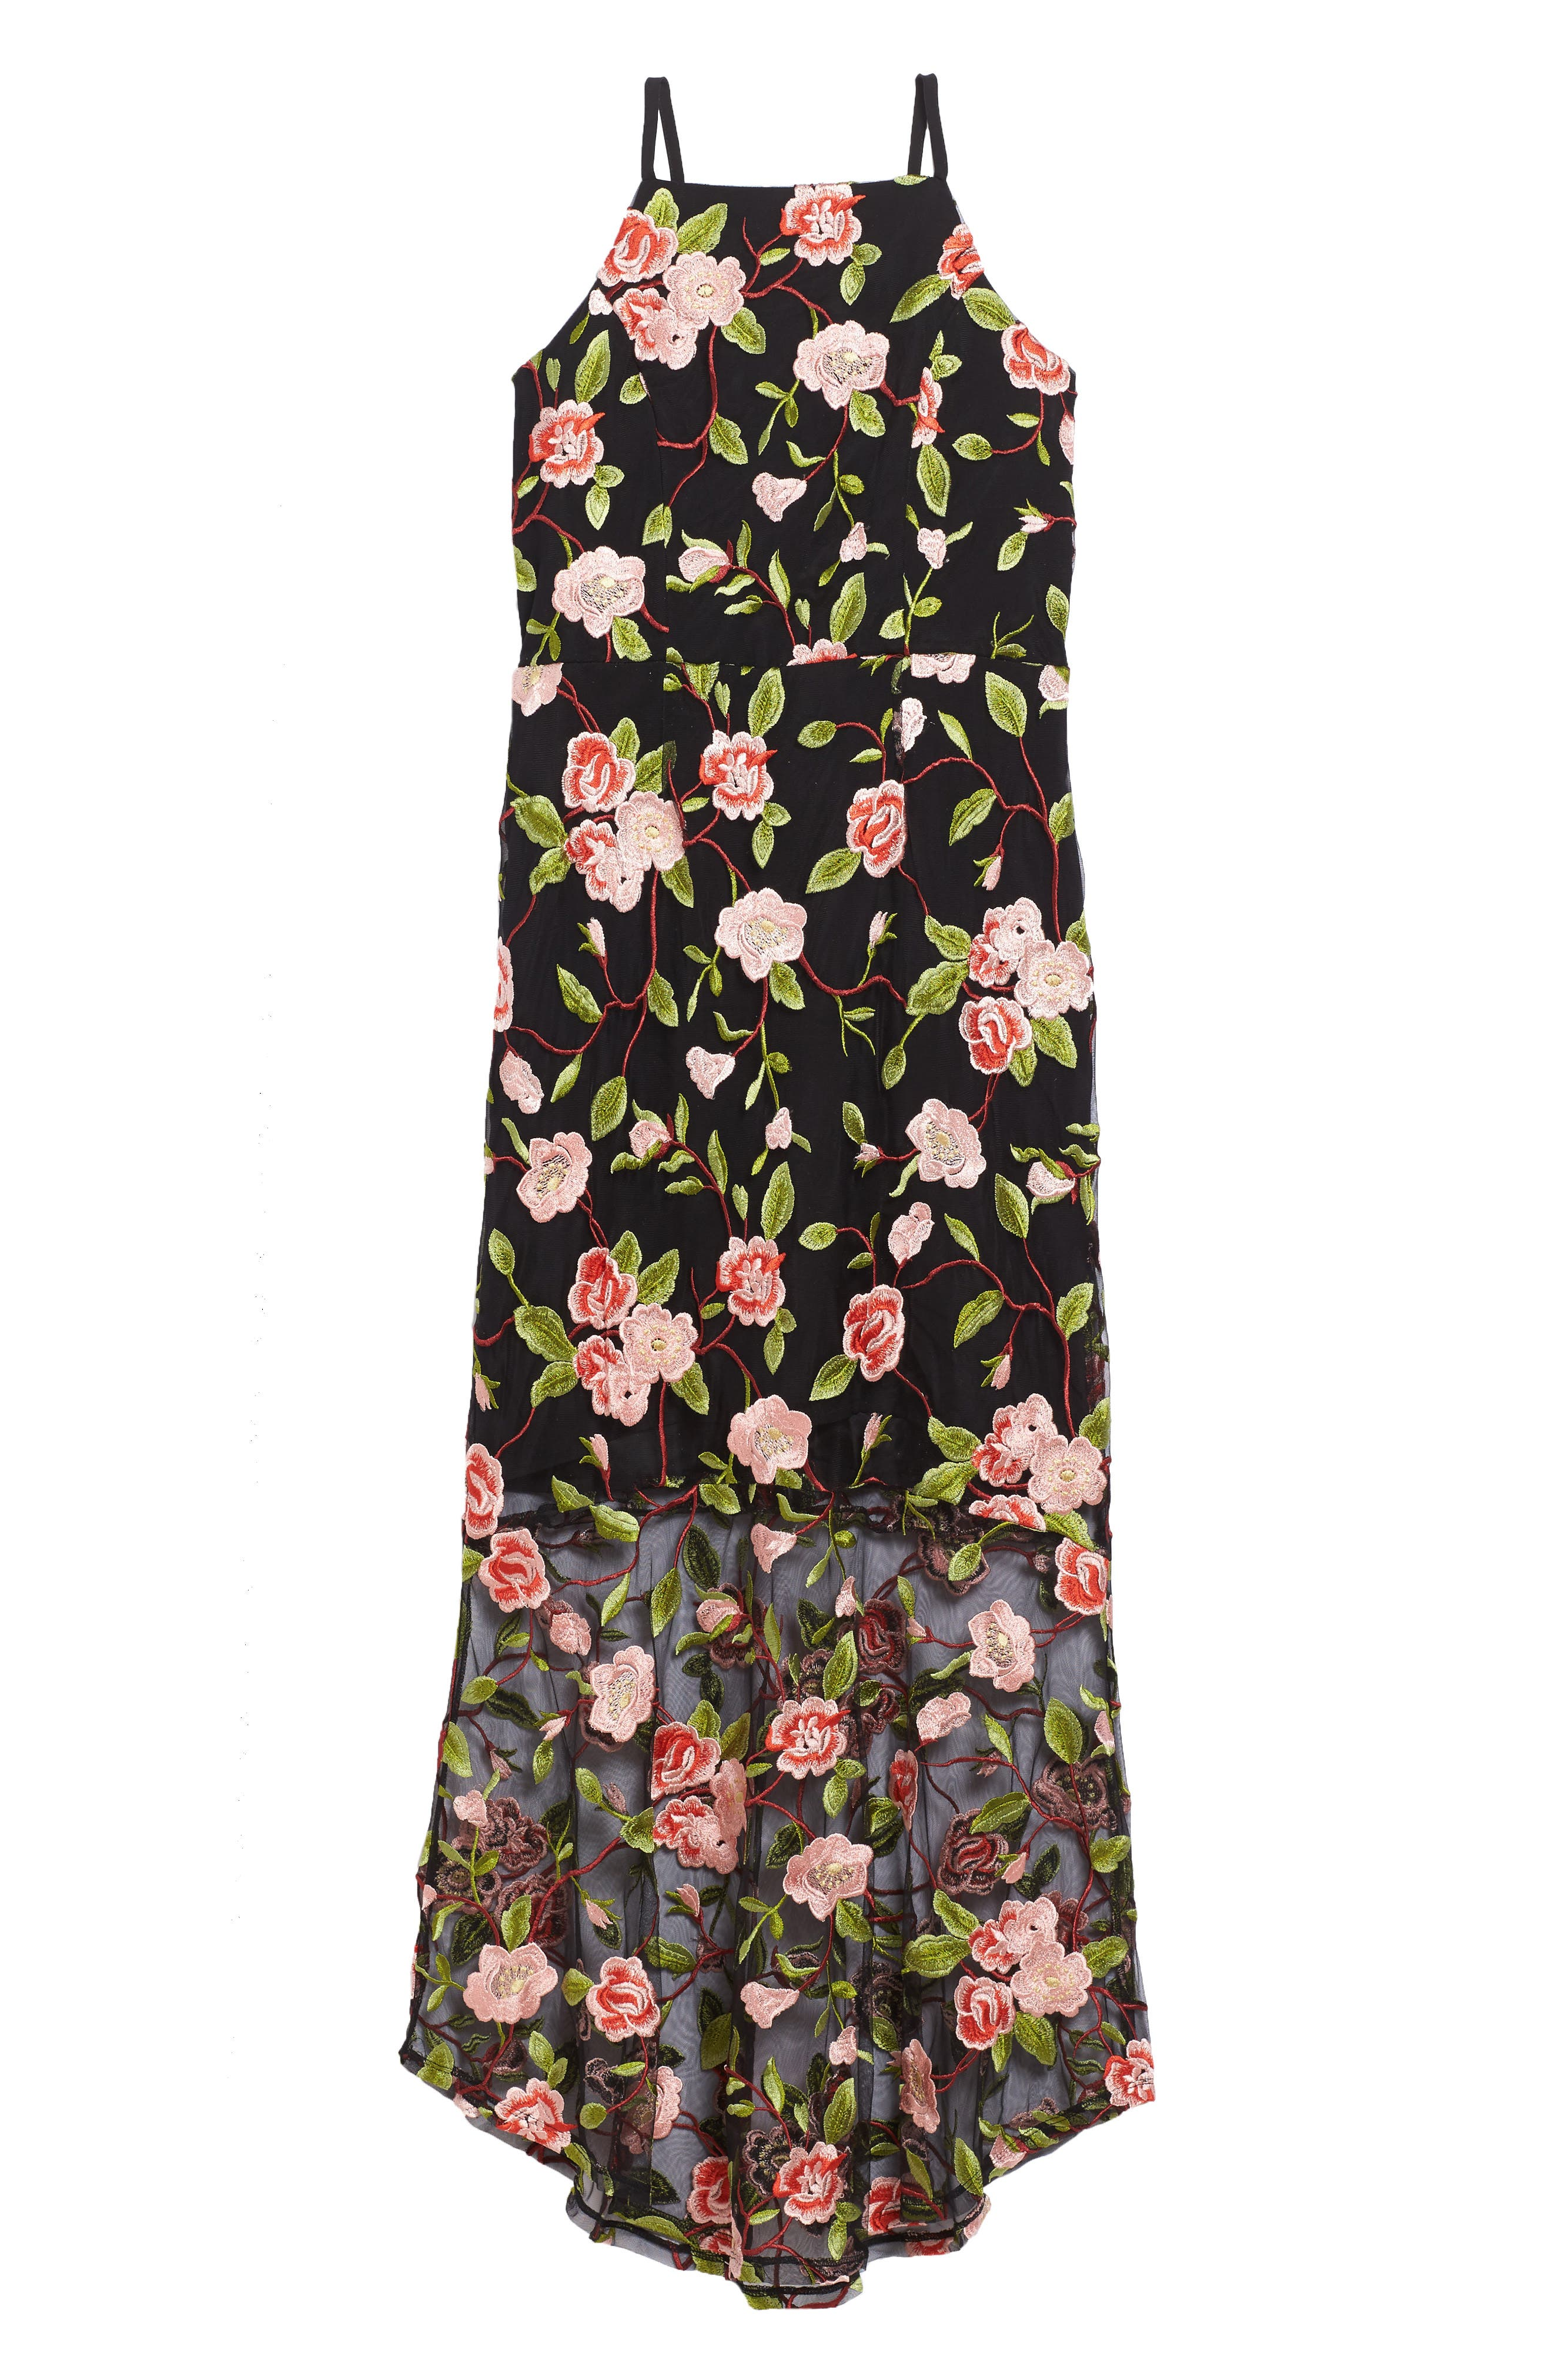 Floral Embroidered Slip Dress,                             Main thumbnail 1, color,                             001